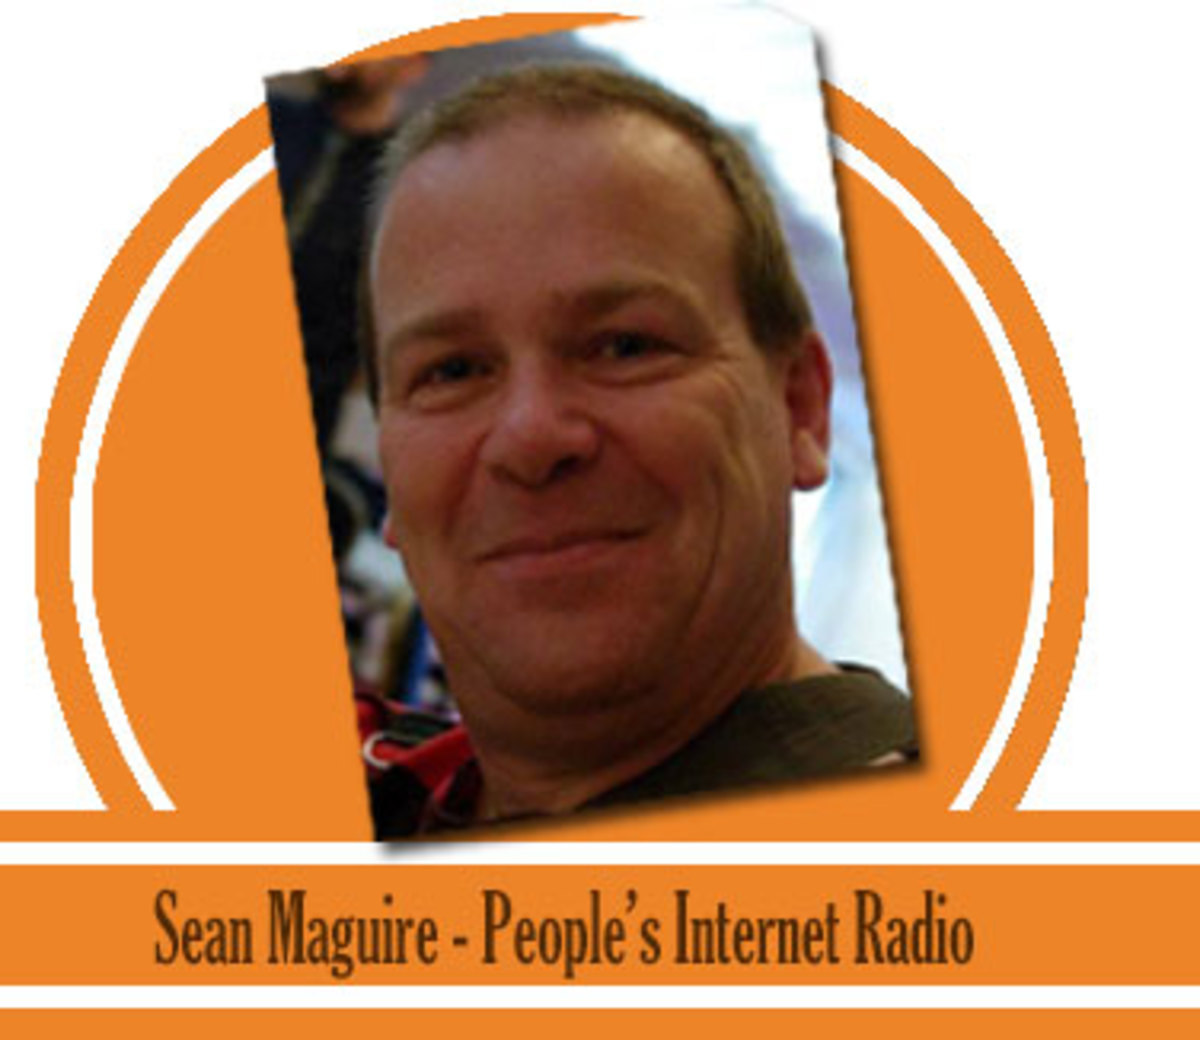 Sean Maguire, Peoples Internet Radio. Thank you for finally giving us a voice.